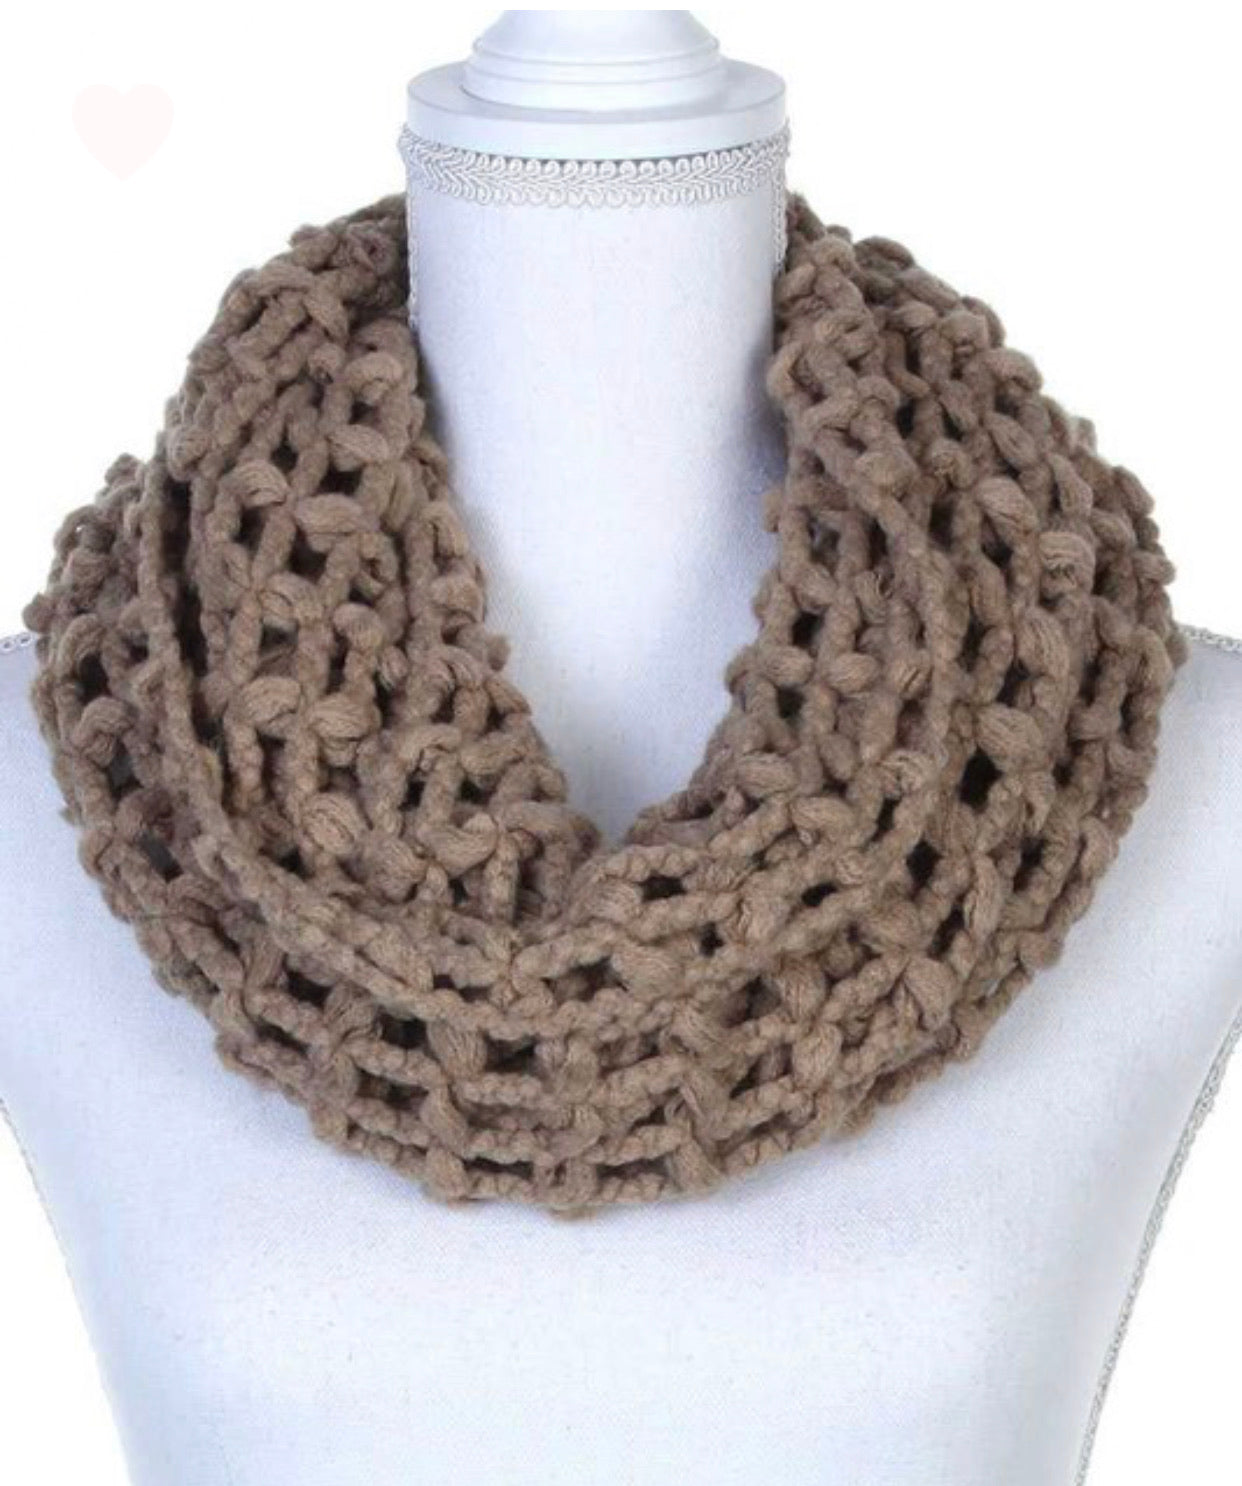 KNIT INFINITY SCARVES - various colors